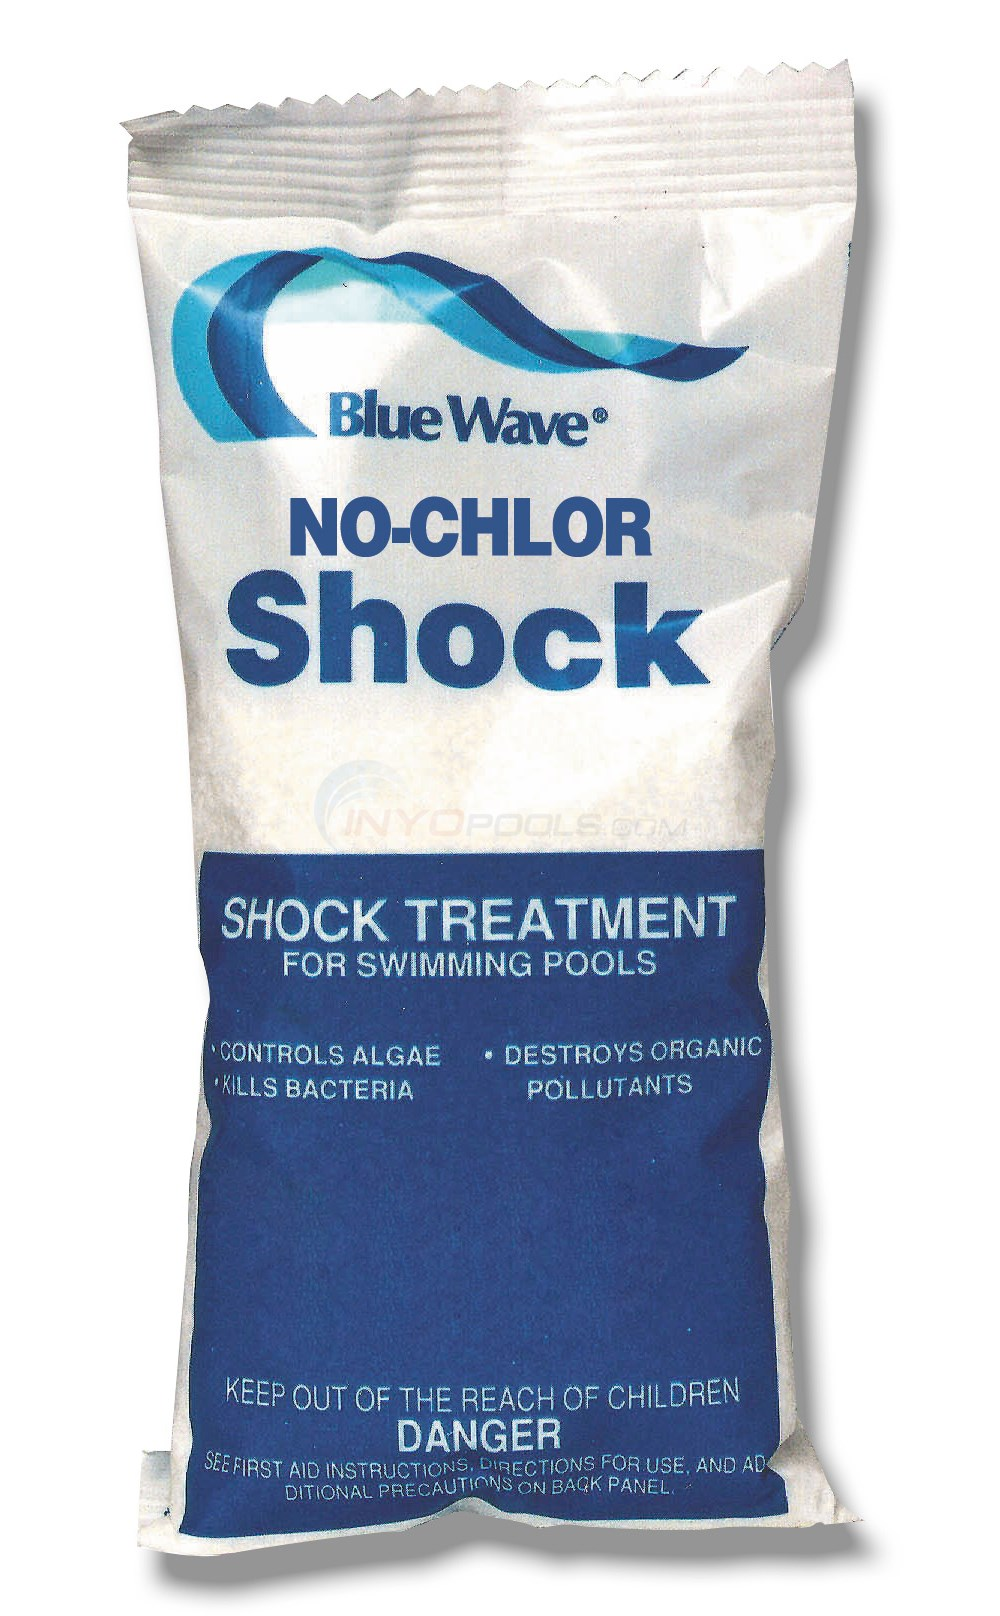 No-Chlor Pool Shock 6 x 1 lb. bag